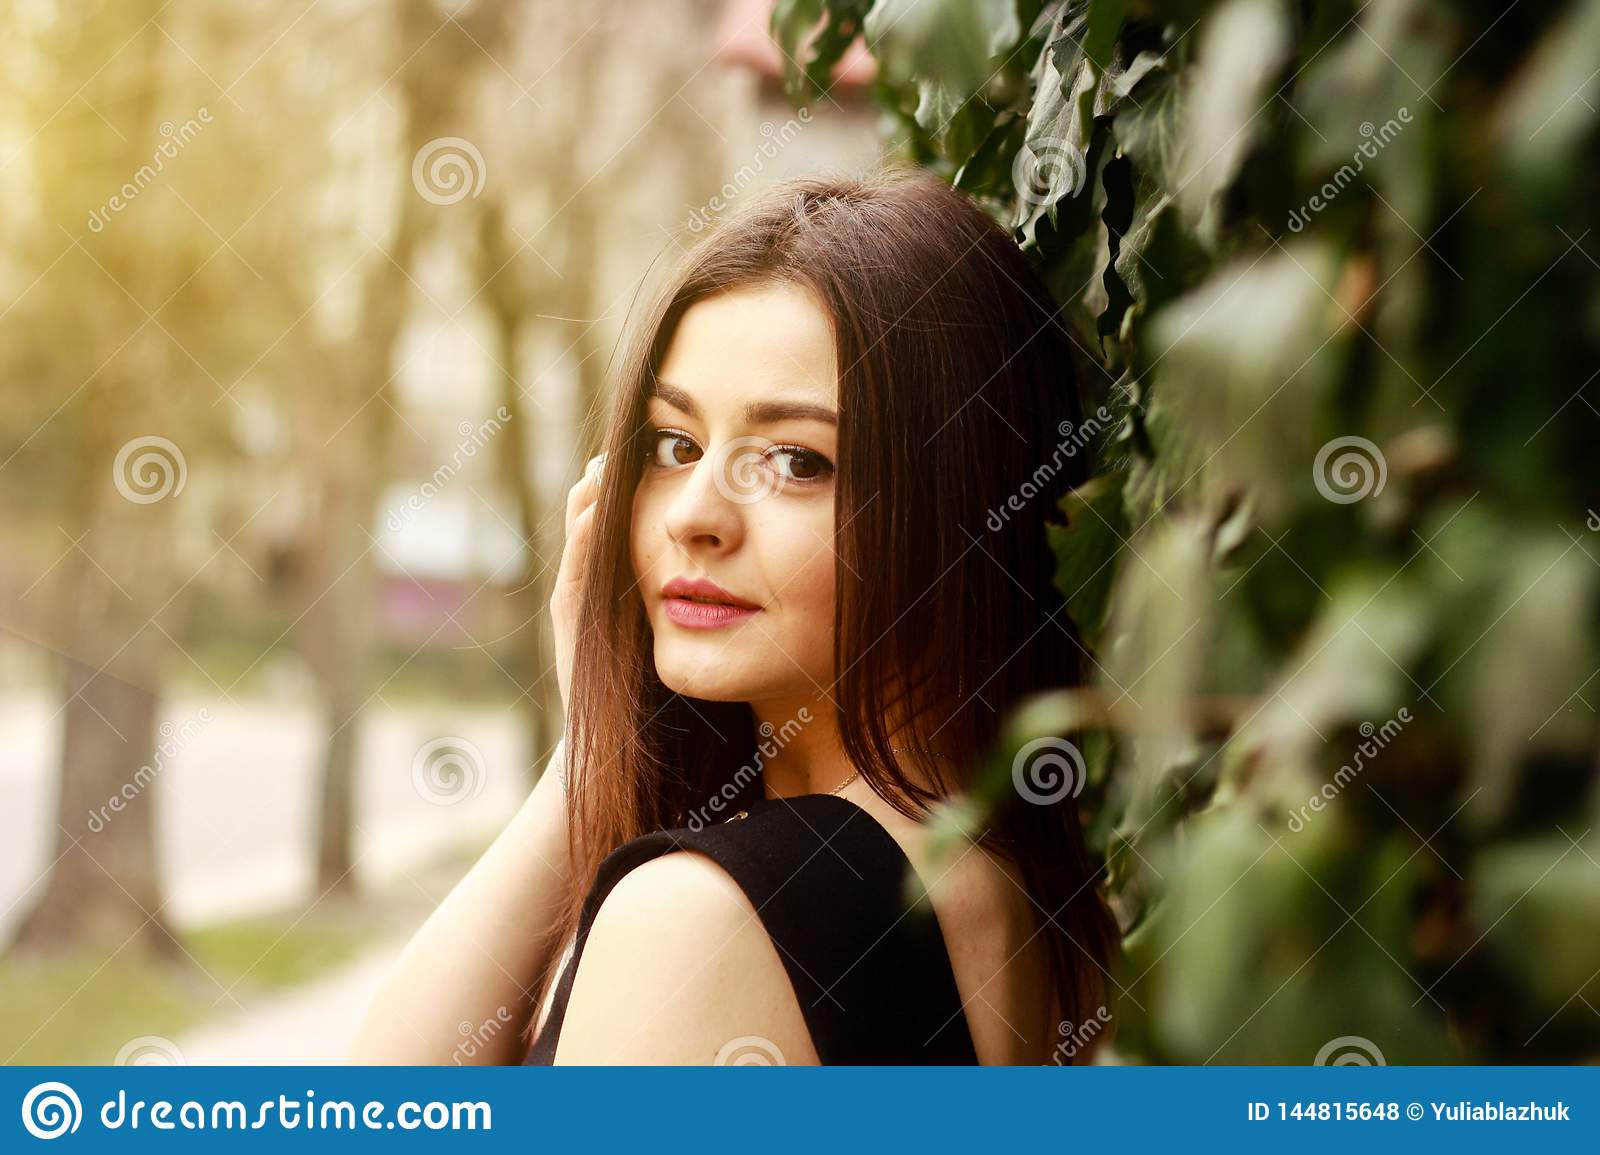 Portrait of thoughtful young pretty woman at street